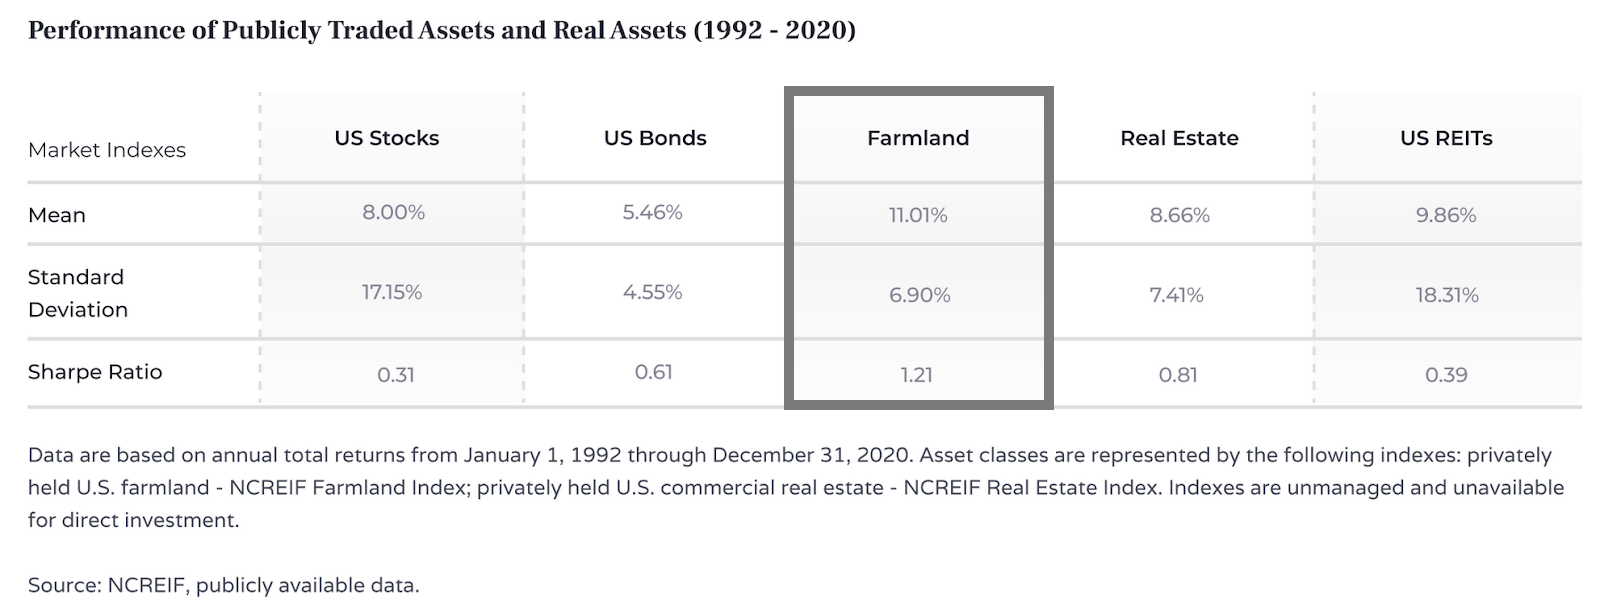 Farmland returns from 1992 - 2020 compared to U.S. stocks, U.S. bonds, US REITs, and real estate